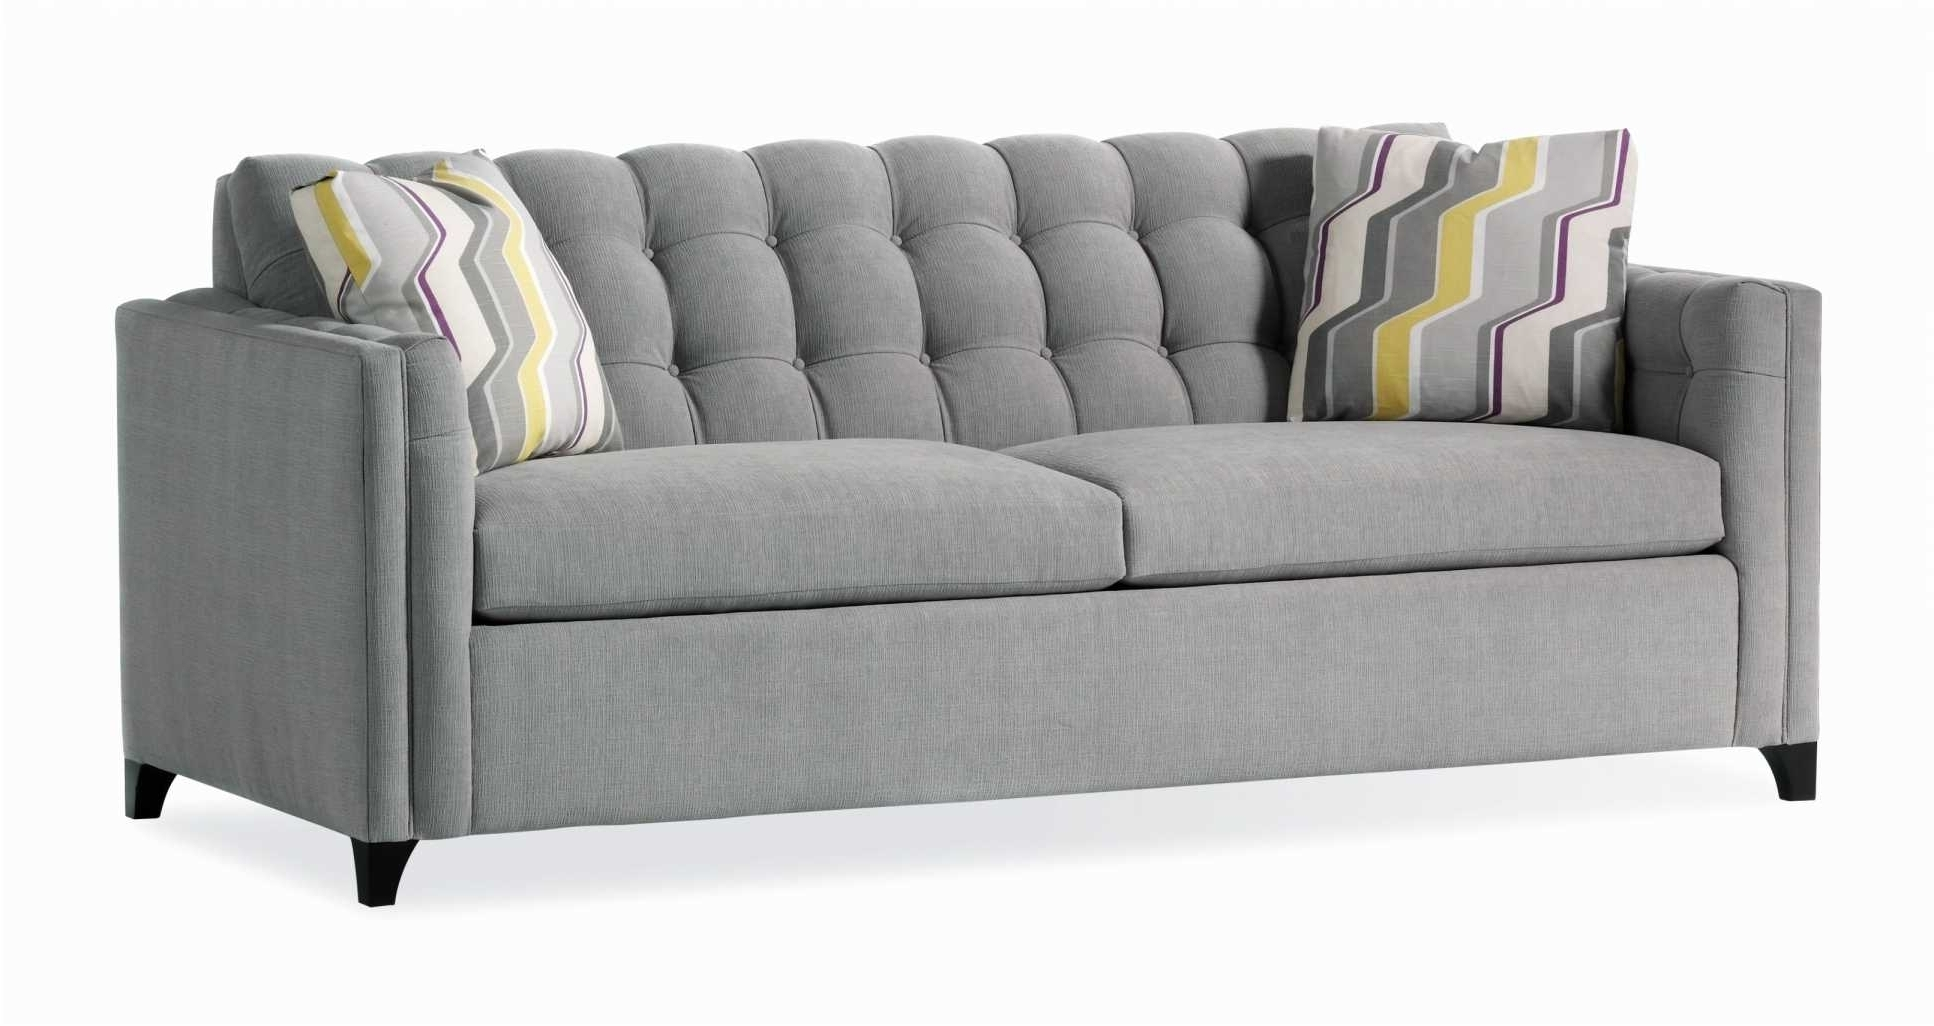 Small Loveseats With Chaise Inside Well Known Loveseat : Chaise Loveseat New Small Loveseat With Chaise Lounge (View 14 of 15)